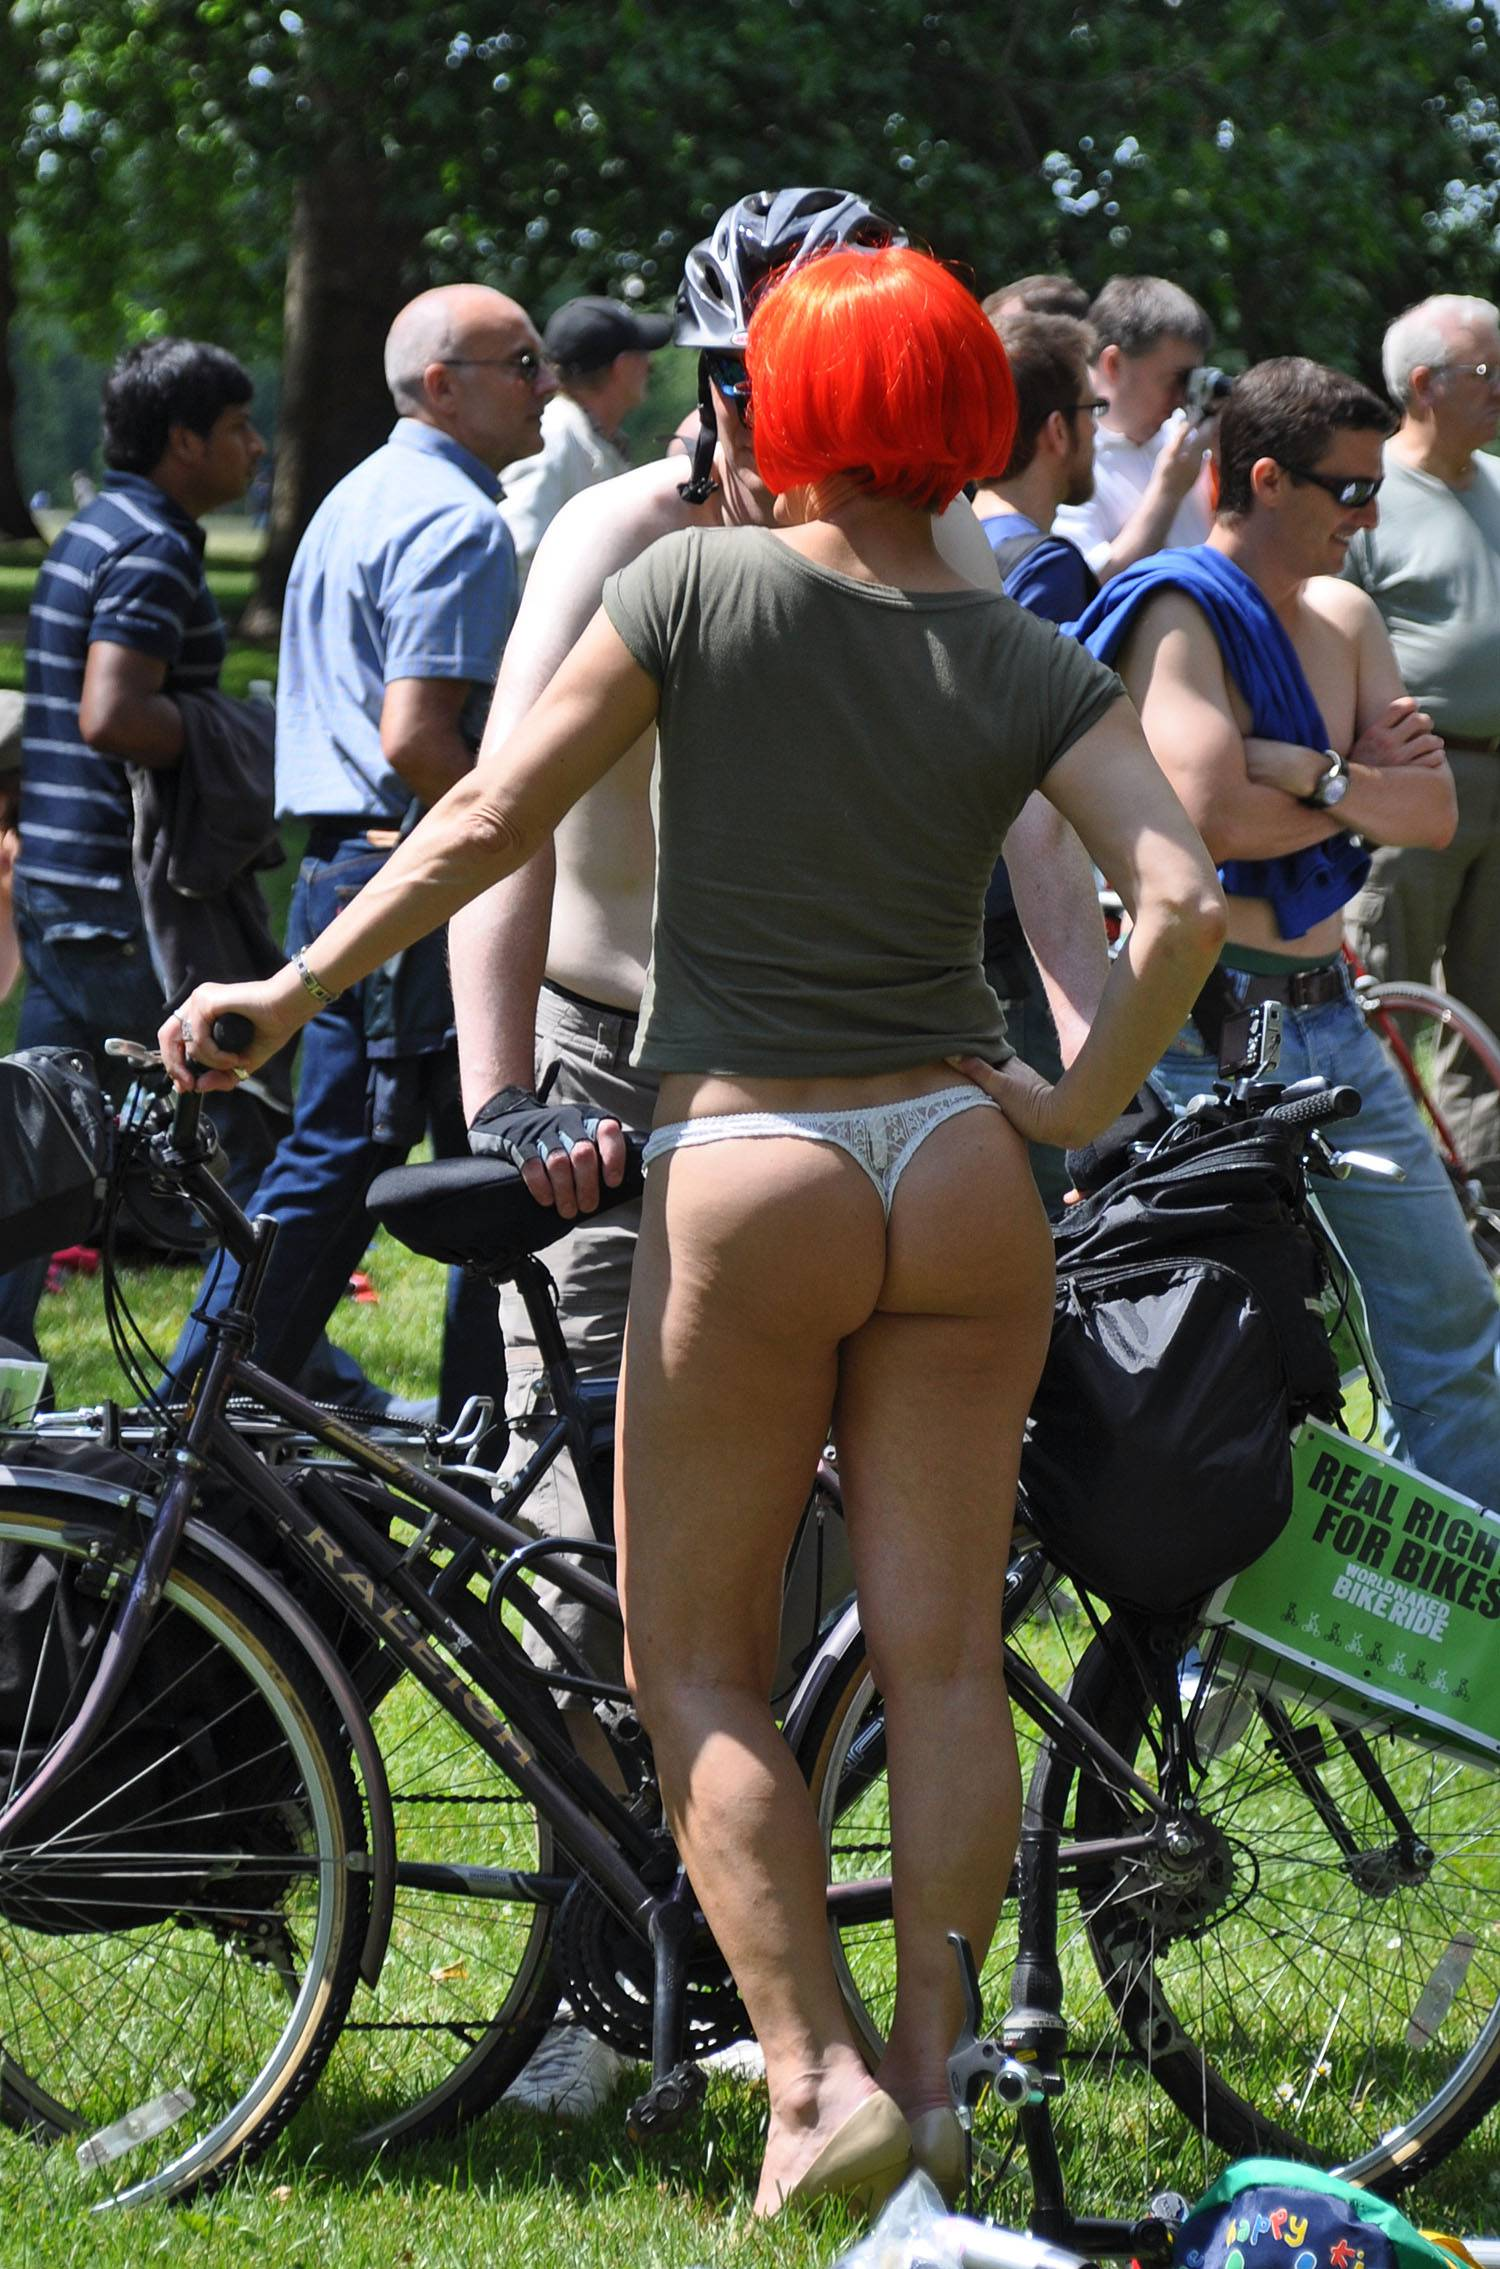 World Naked Bike Ride (WNBR) 2009 - 1